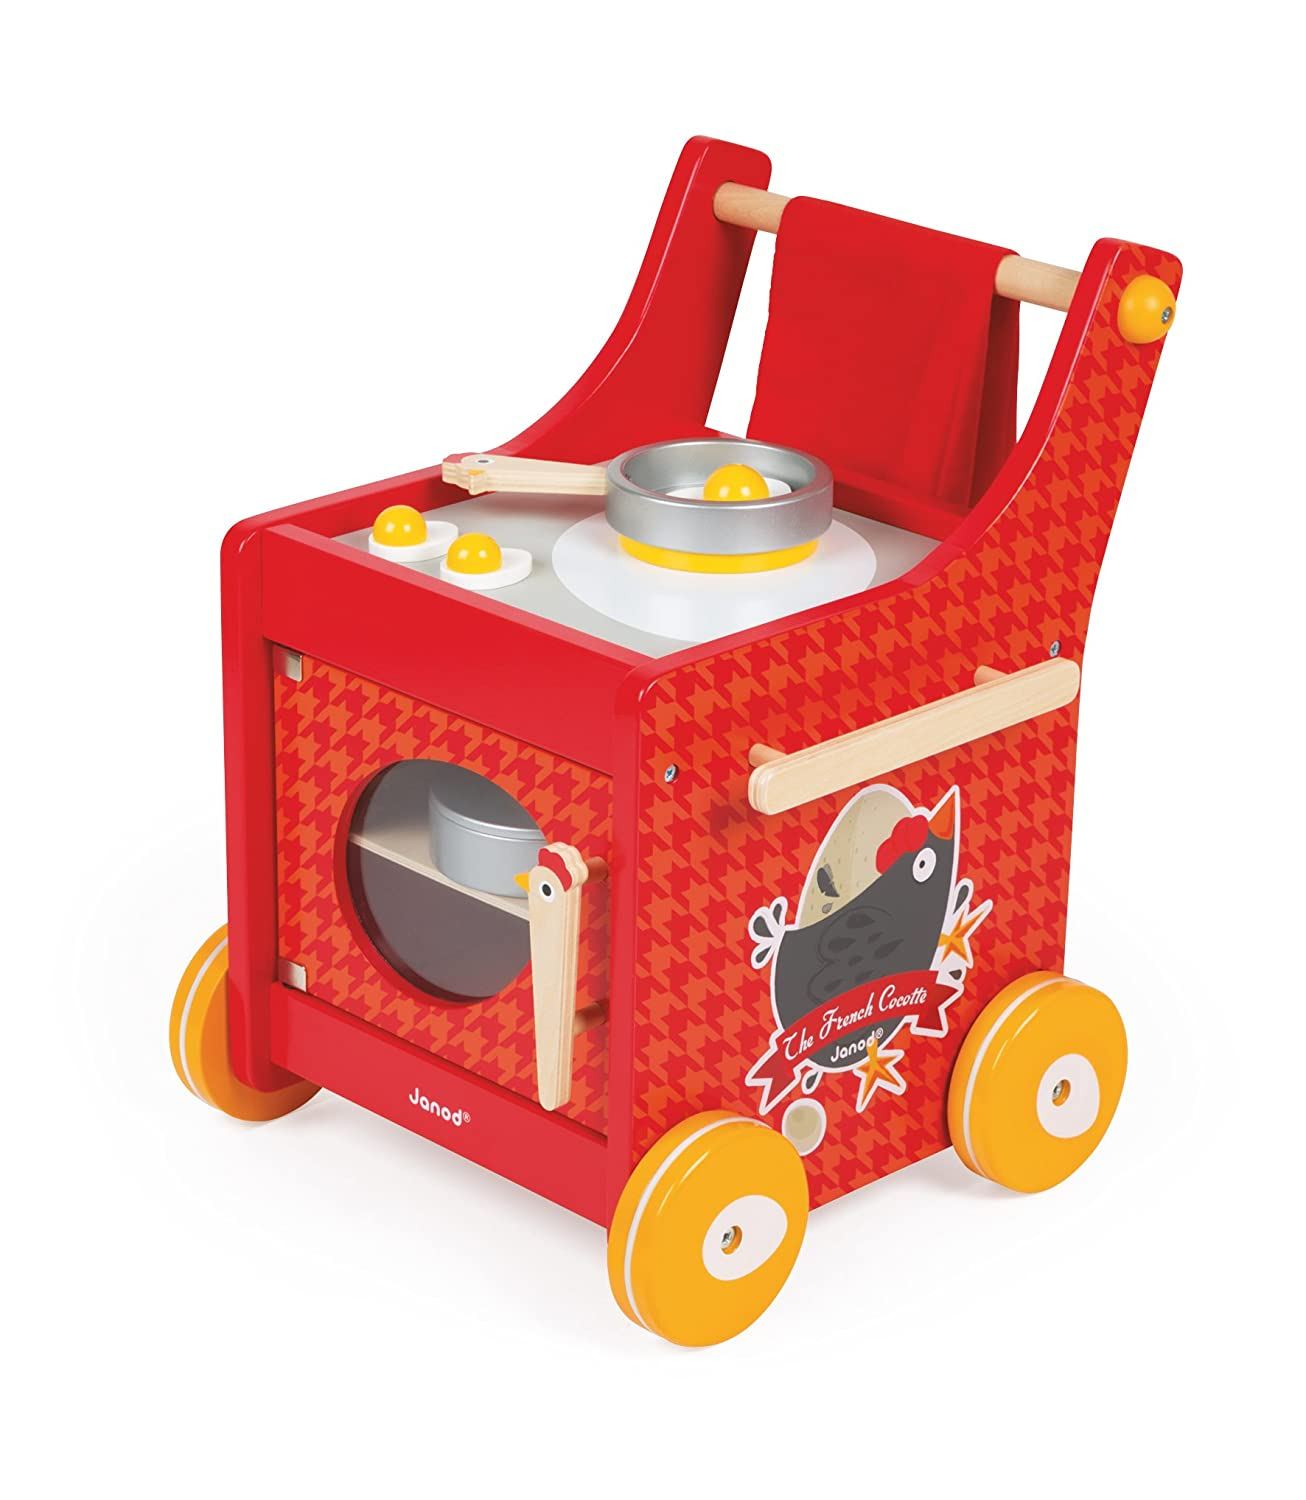 Kinderküche Rot - Janod French Cocotte Trolley